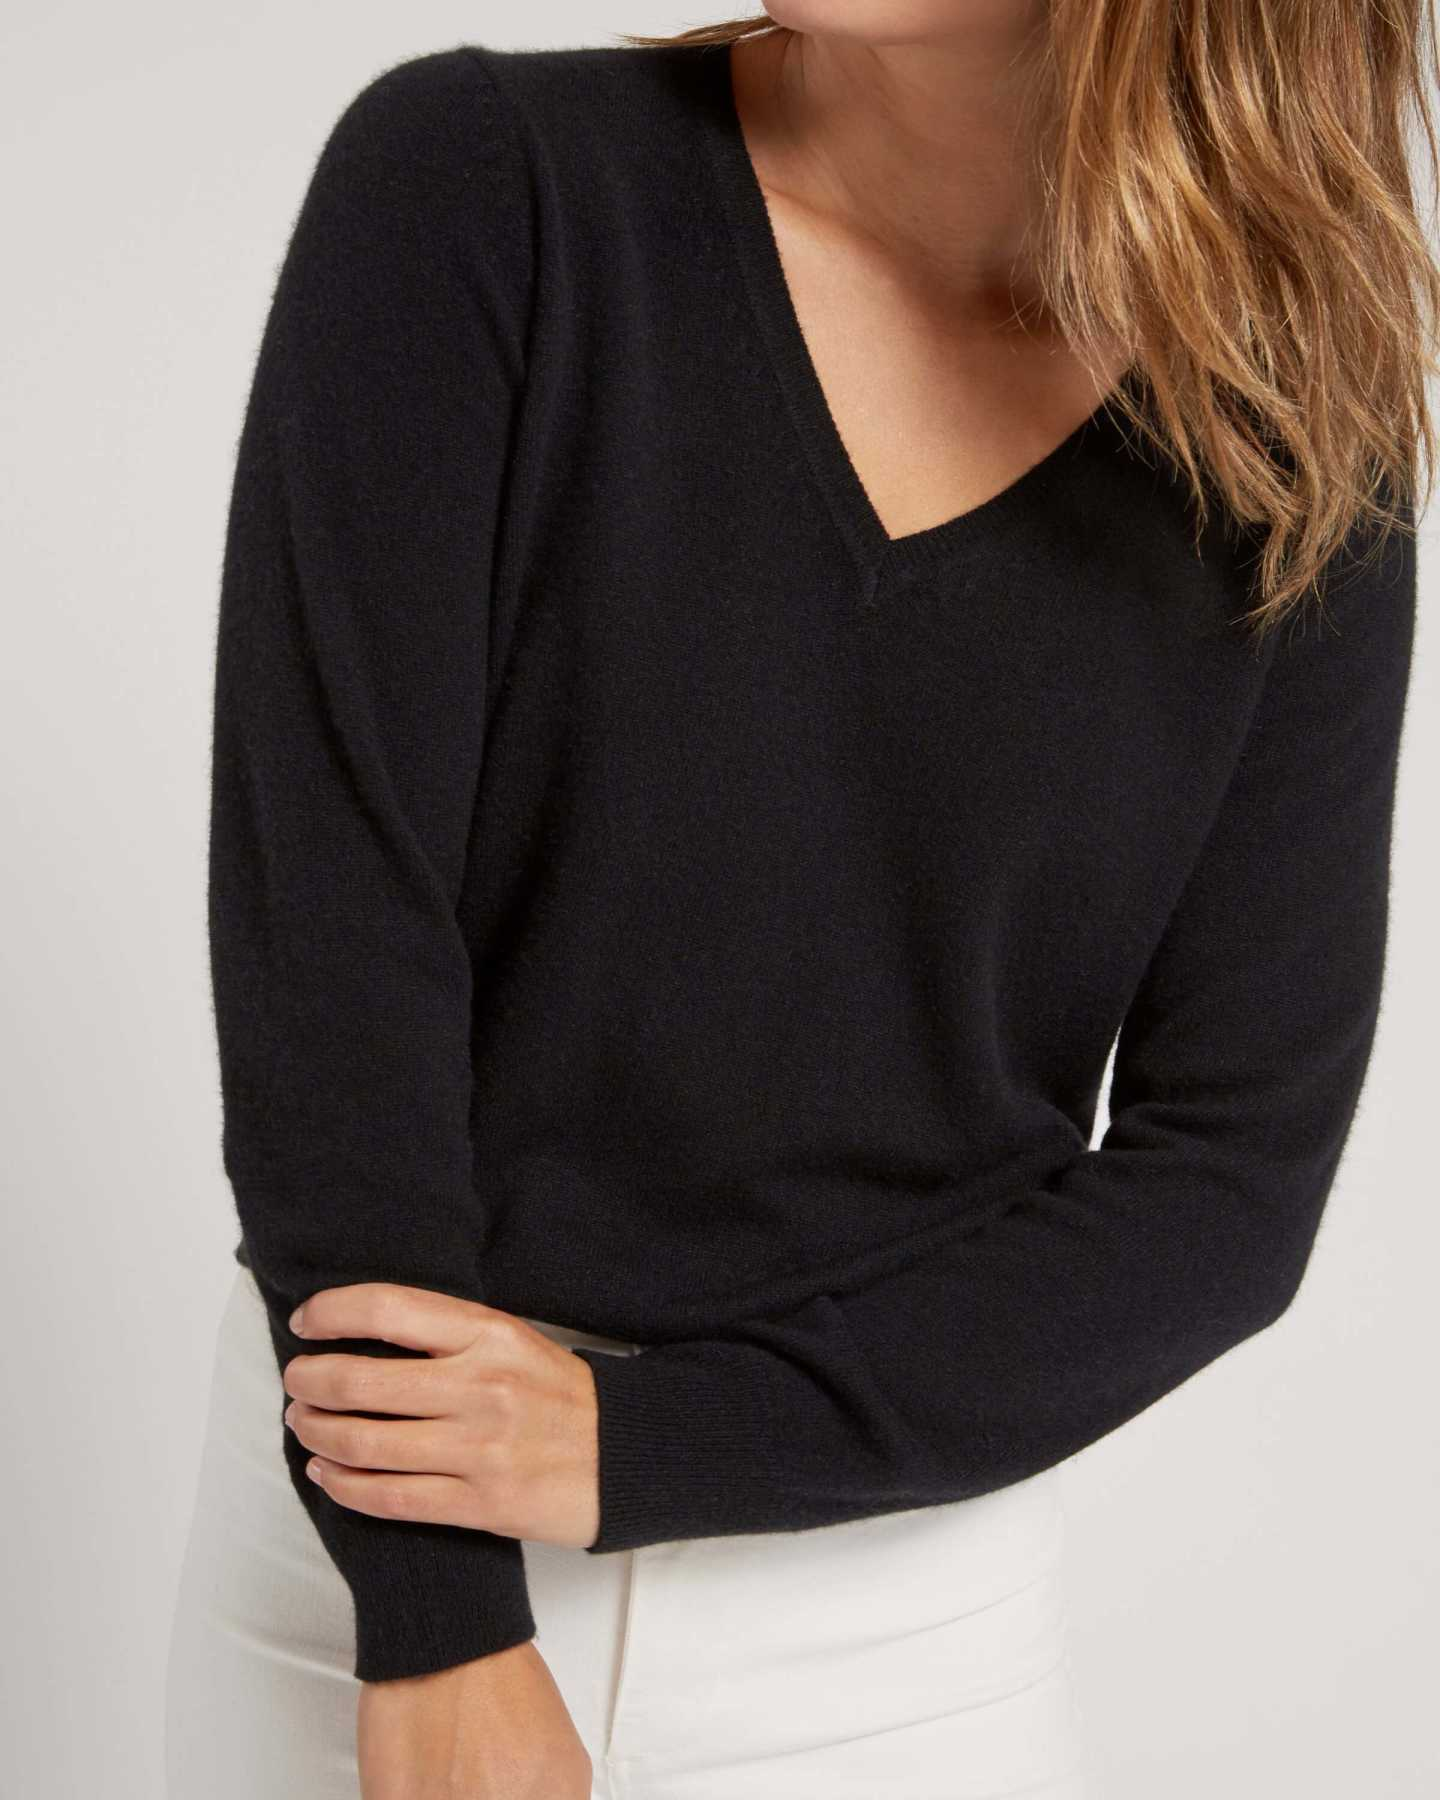 black cashmere v-neck sweater for women from front